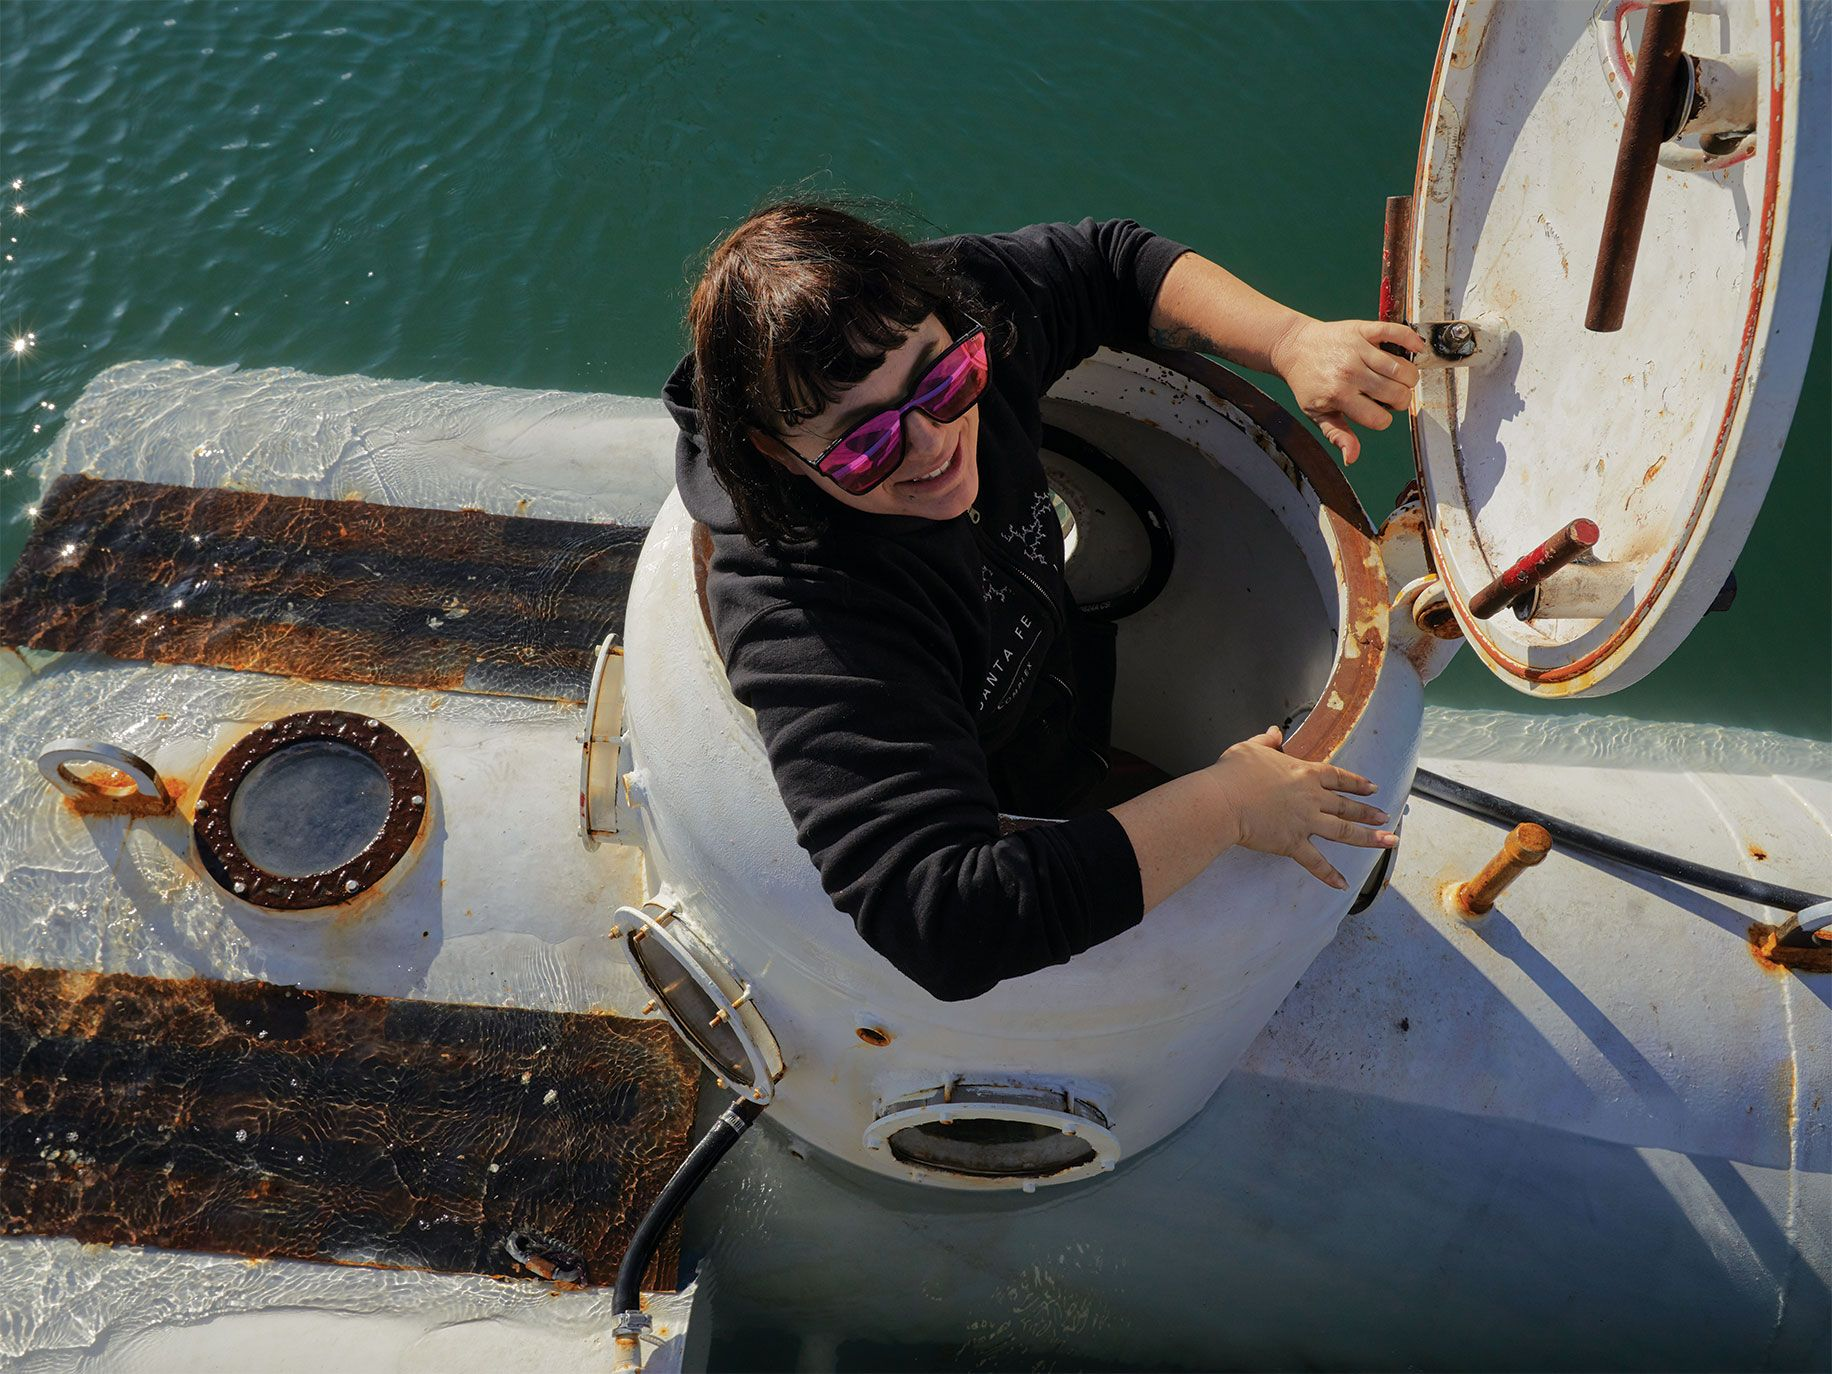 Shanee Stopnitzky, founder of the Community Submersibles Project, hopes to raise awareness of the oceans.